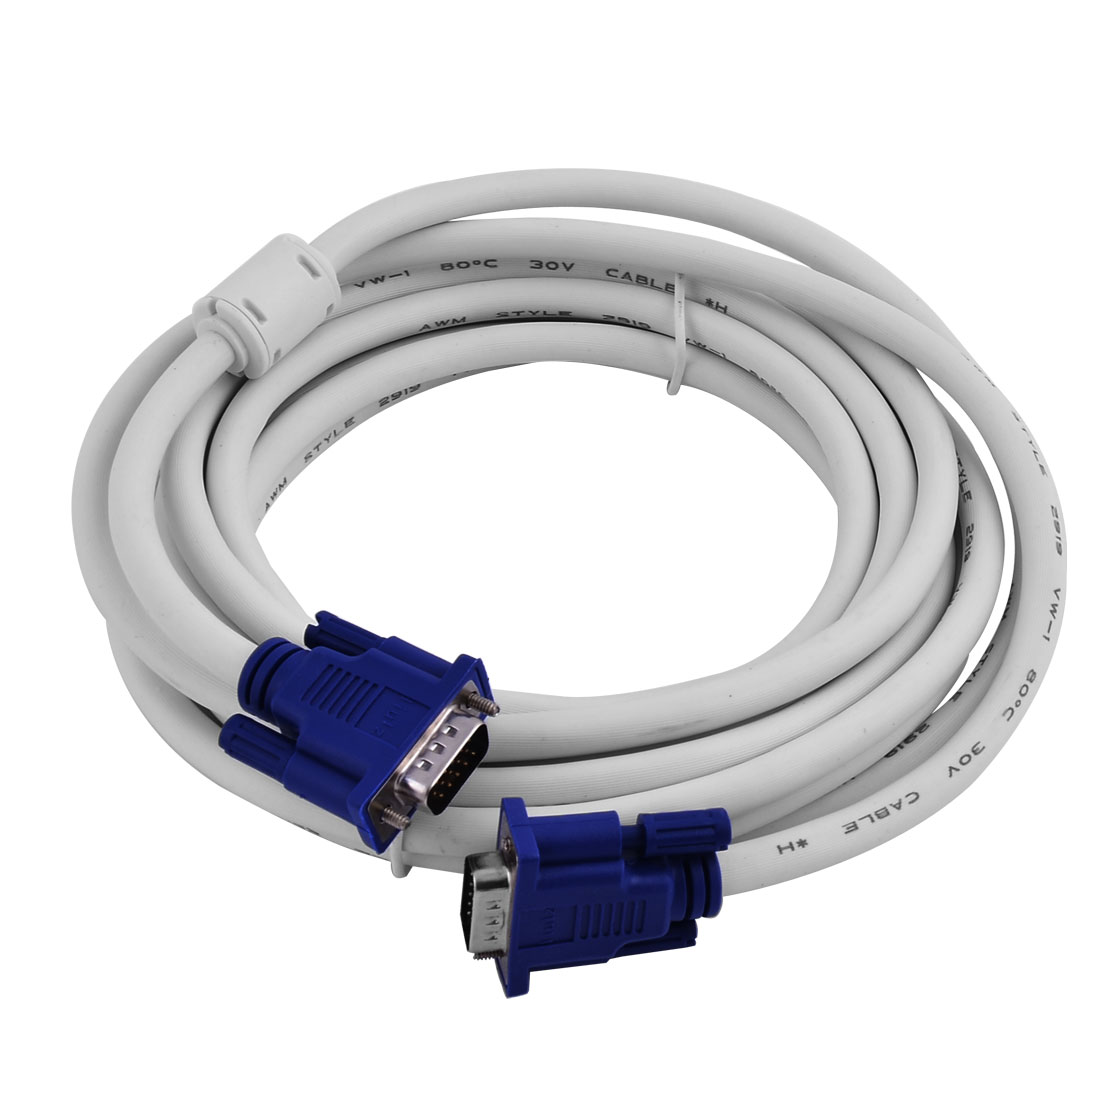 Laptop Vga Reduce 15 Male To A 9 Prong Wire Diagram For Tv Wiring Monitor Pin Computer Cables16ft Extension Pc Cable